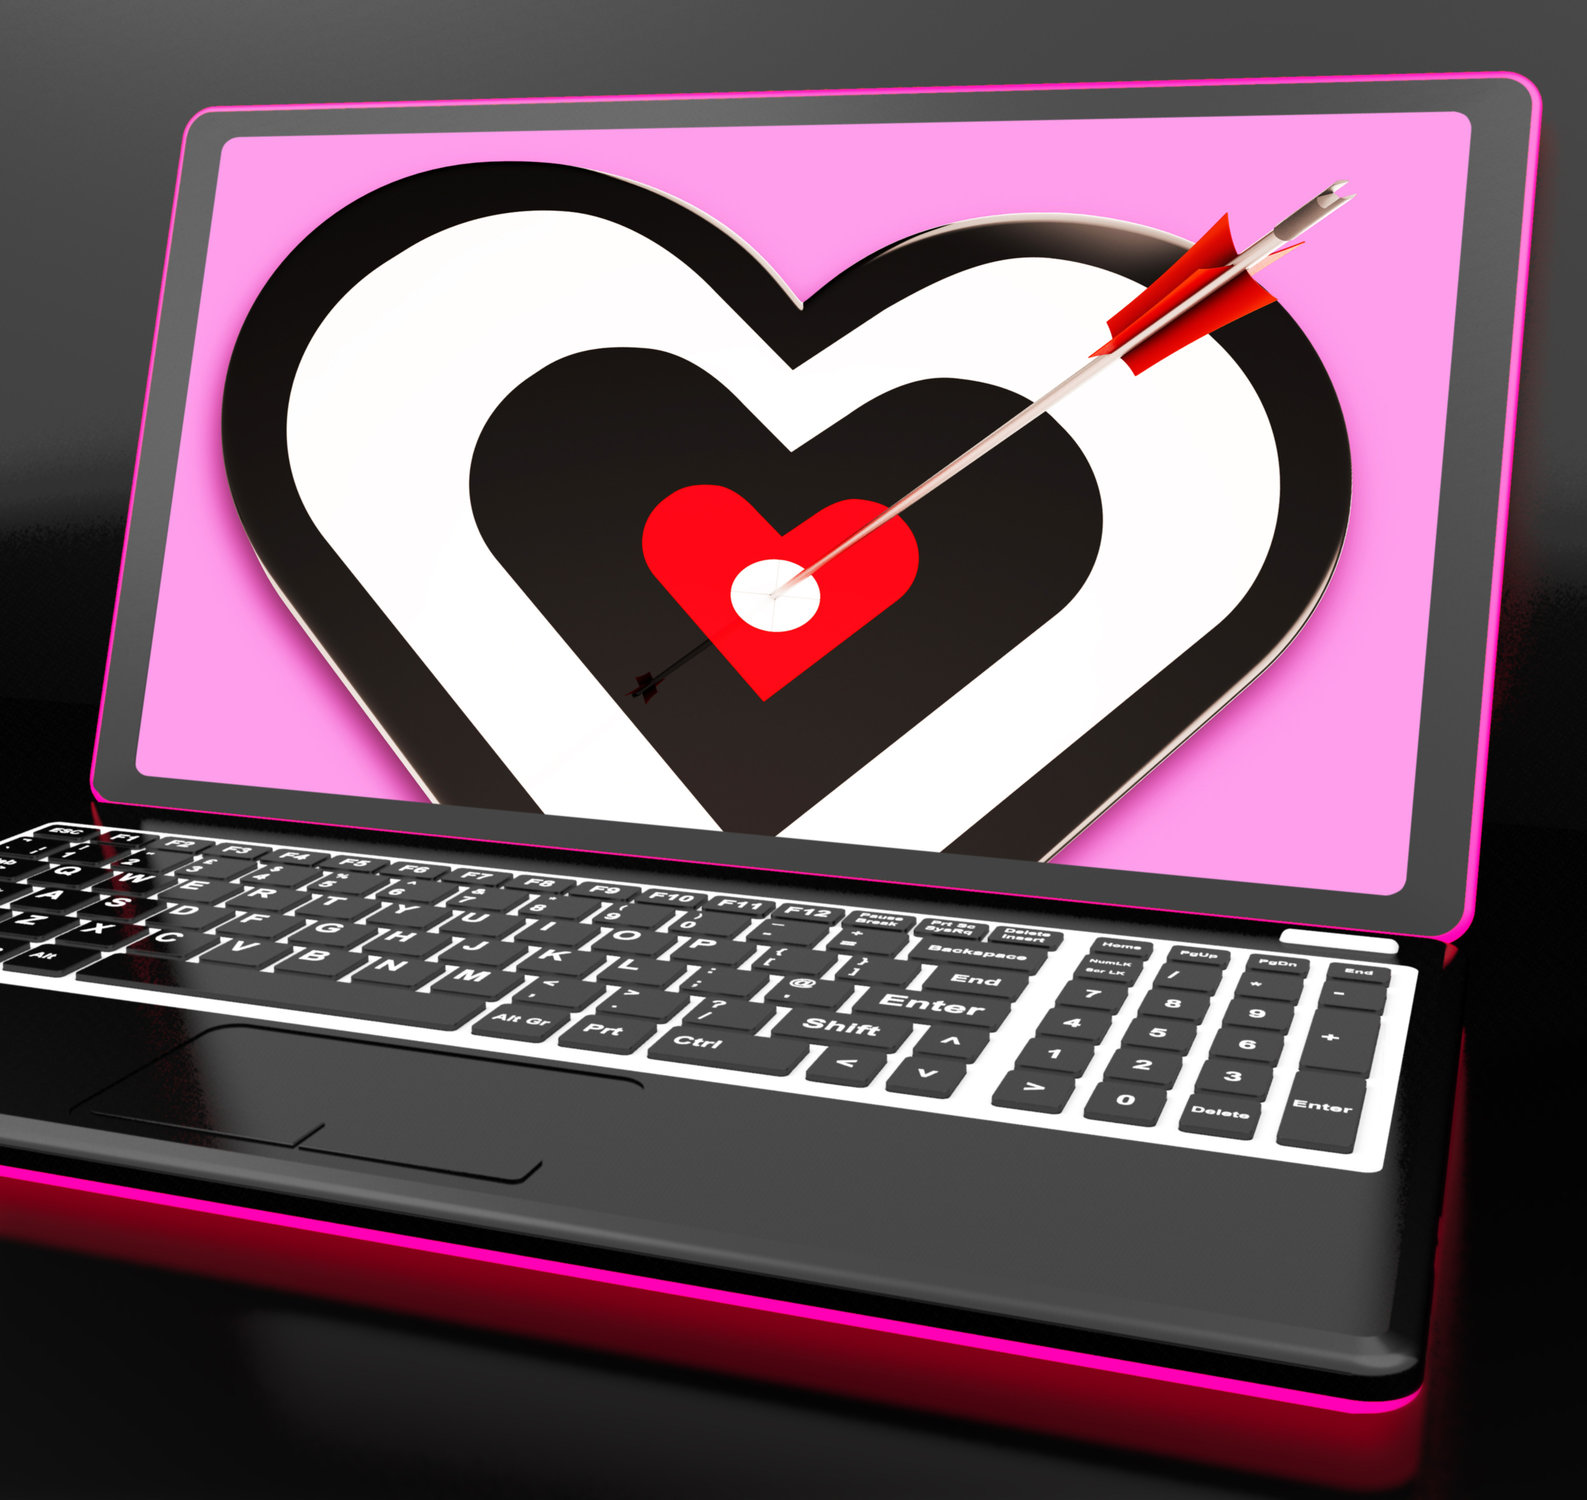 what s your passion clipart #1